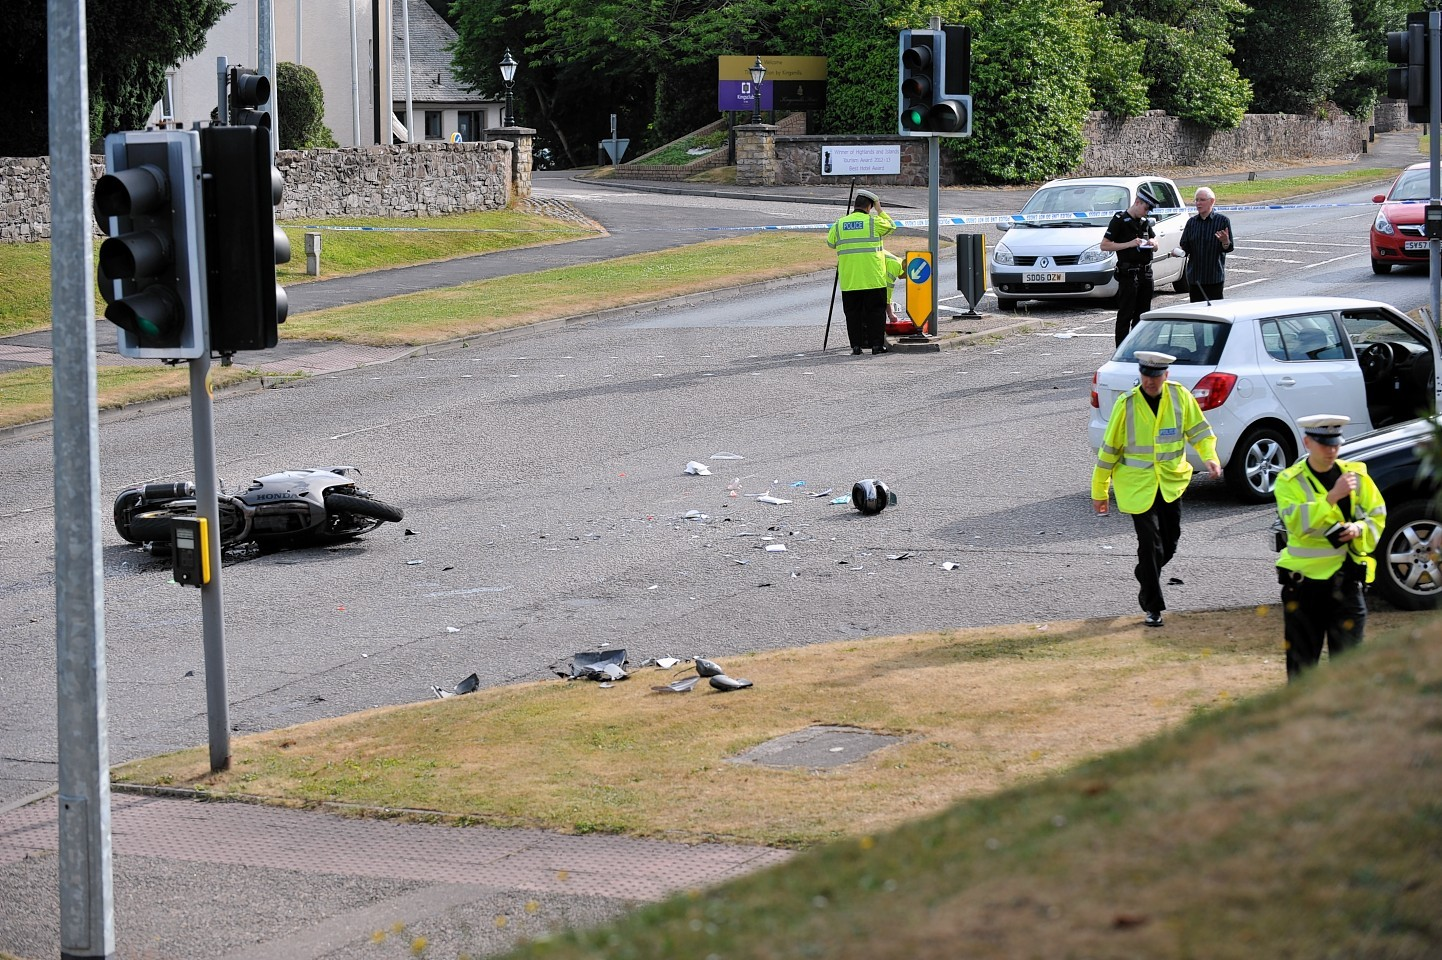 The scene of the crash in which Paul Todd died in July 2013.